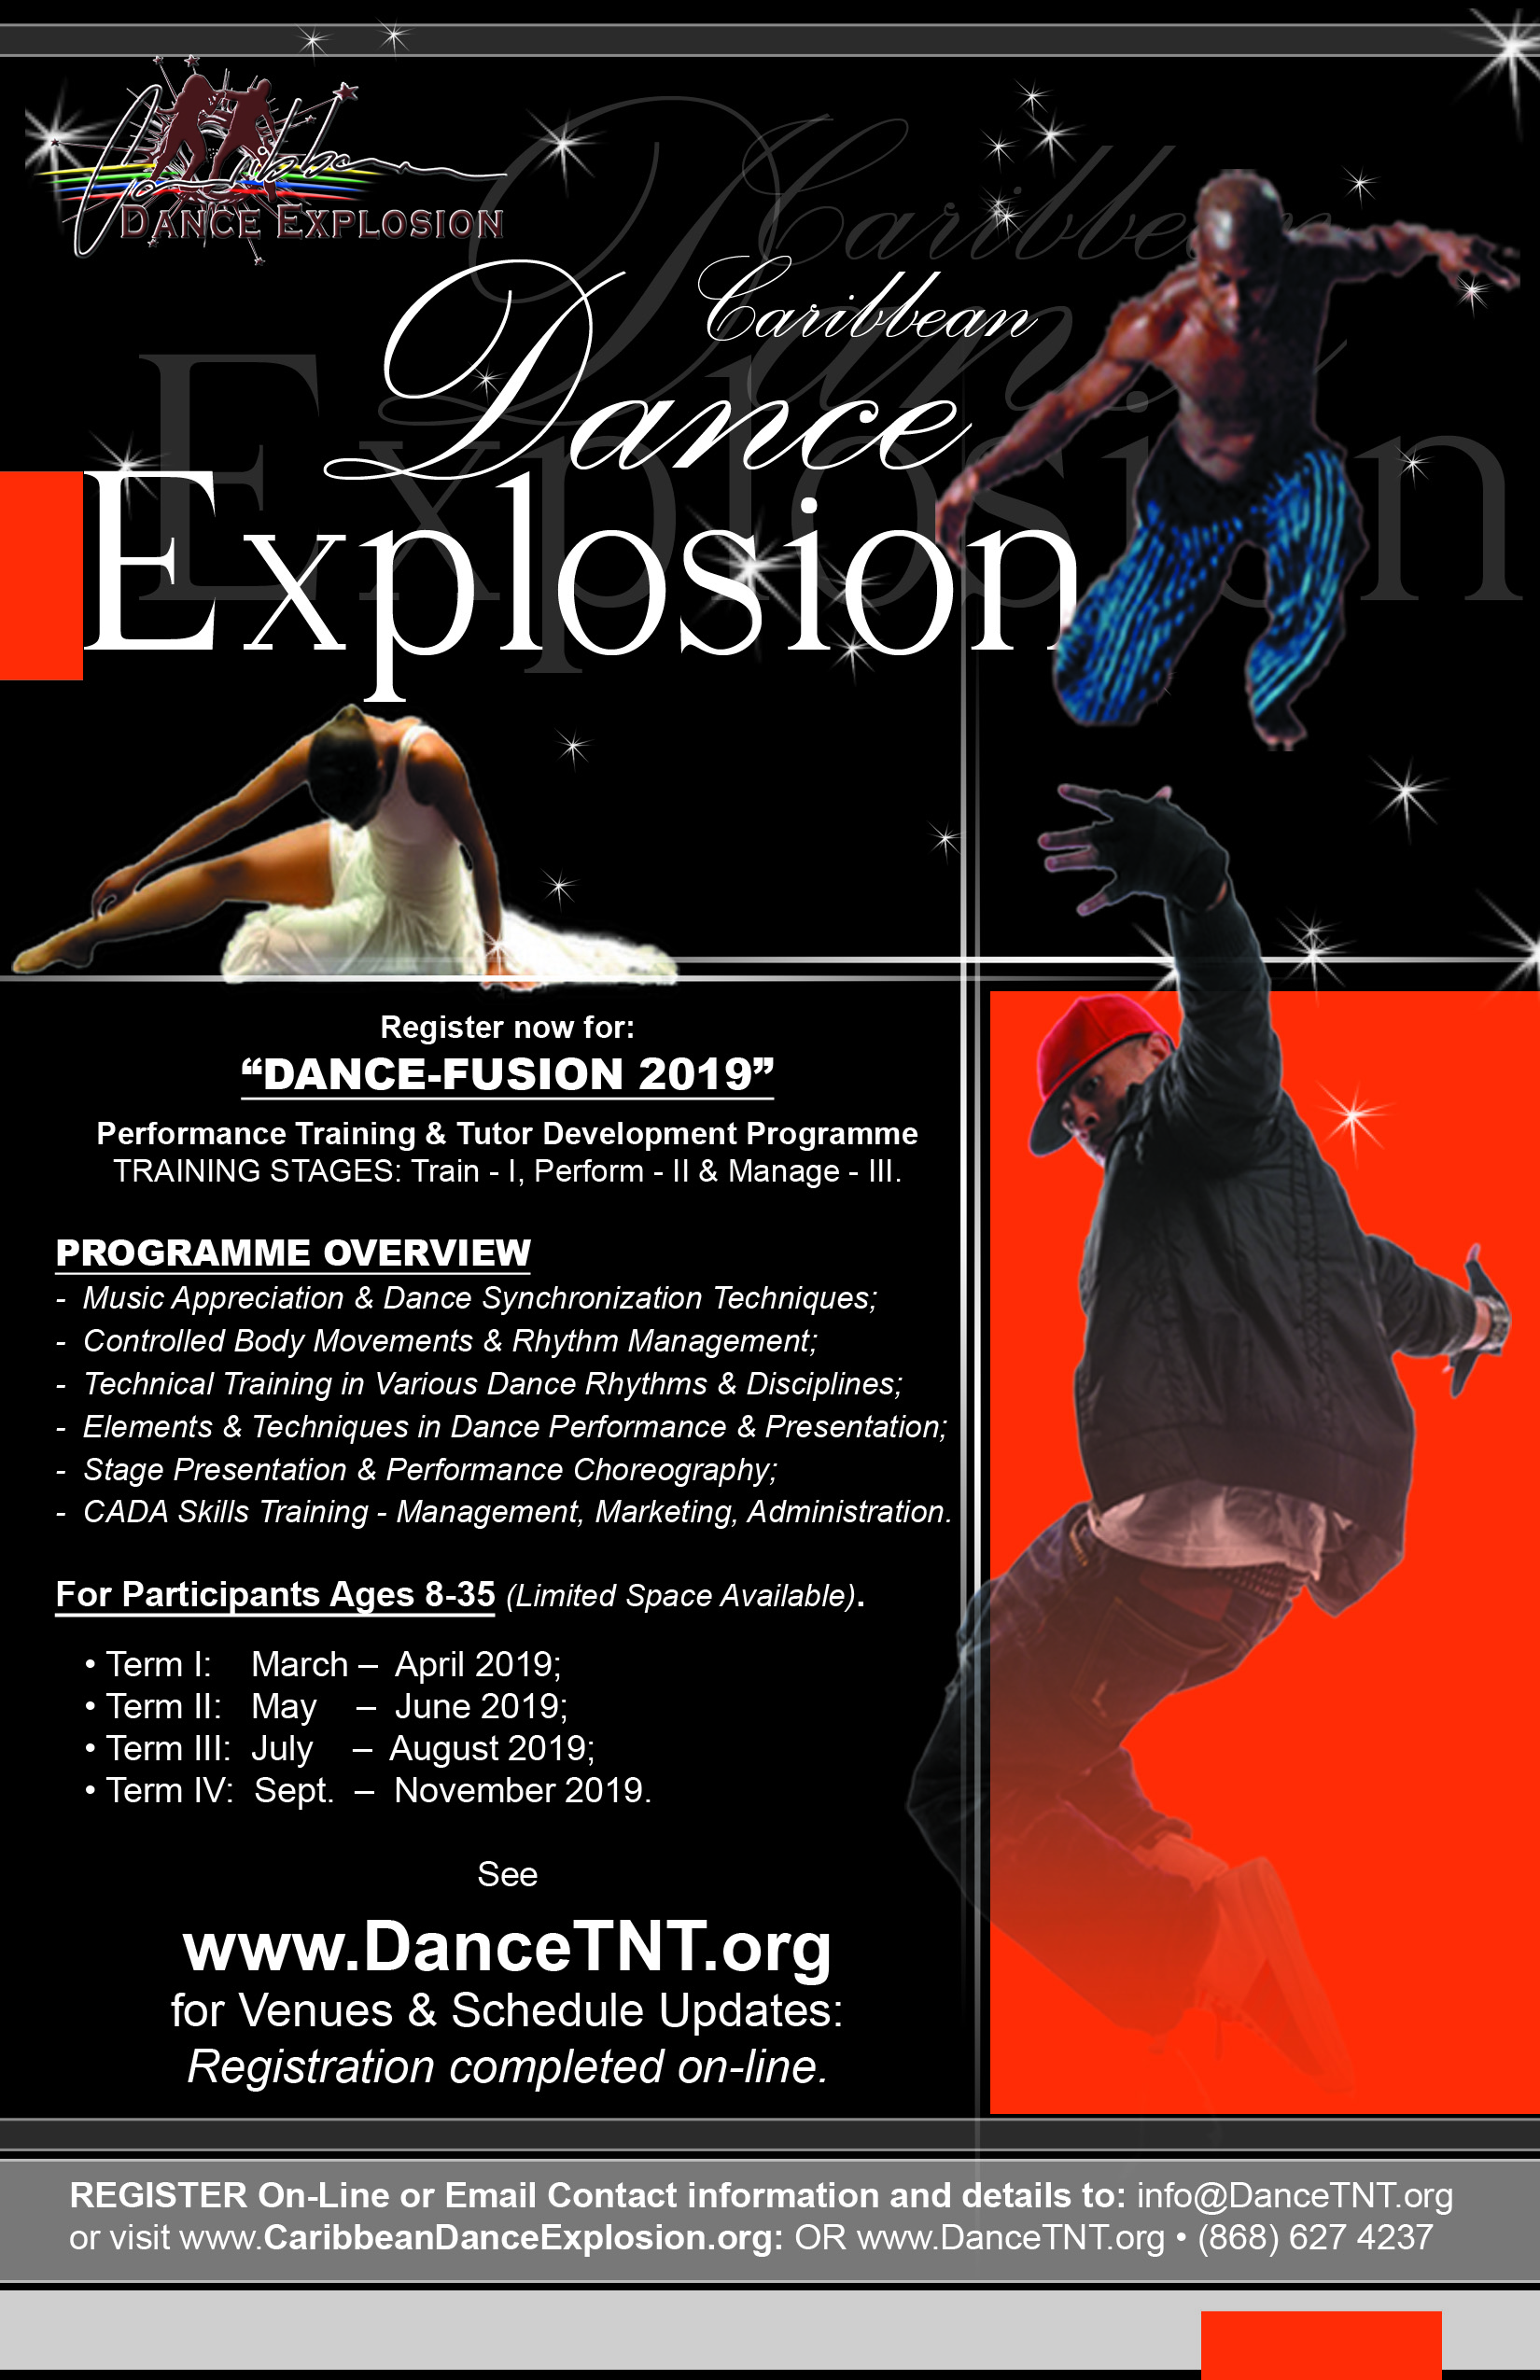 Register for Dance Fusion